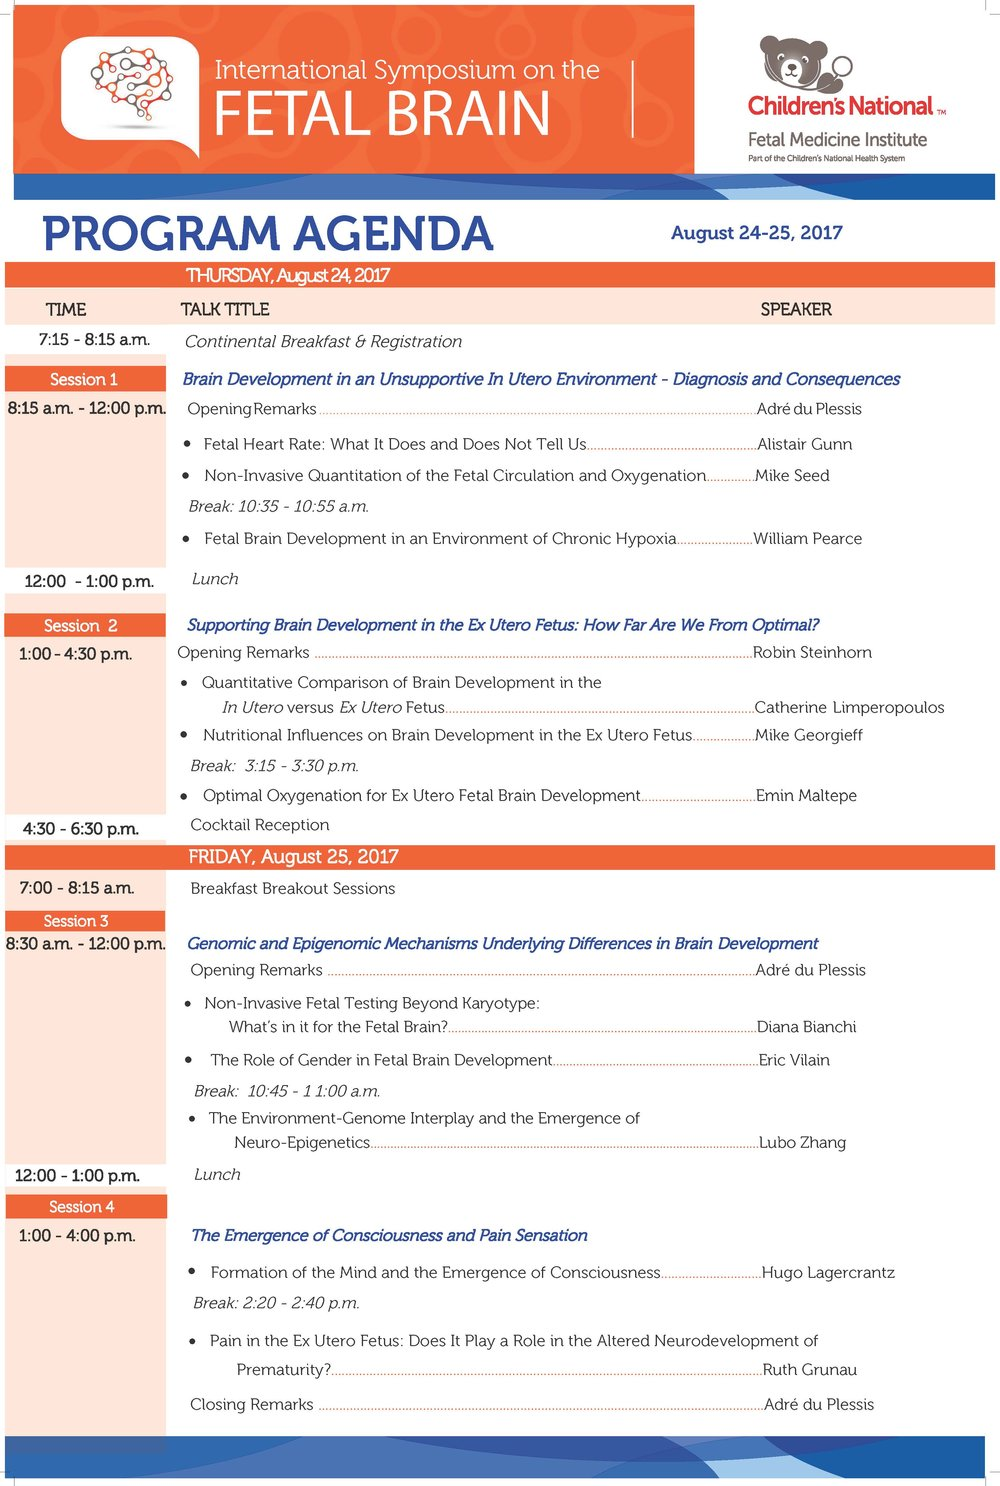 ISFB 2017 Final Agenda_Page_1.jpg